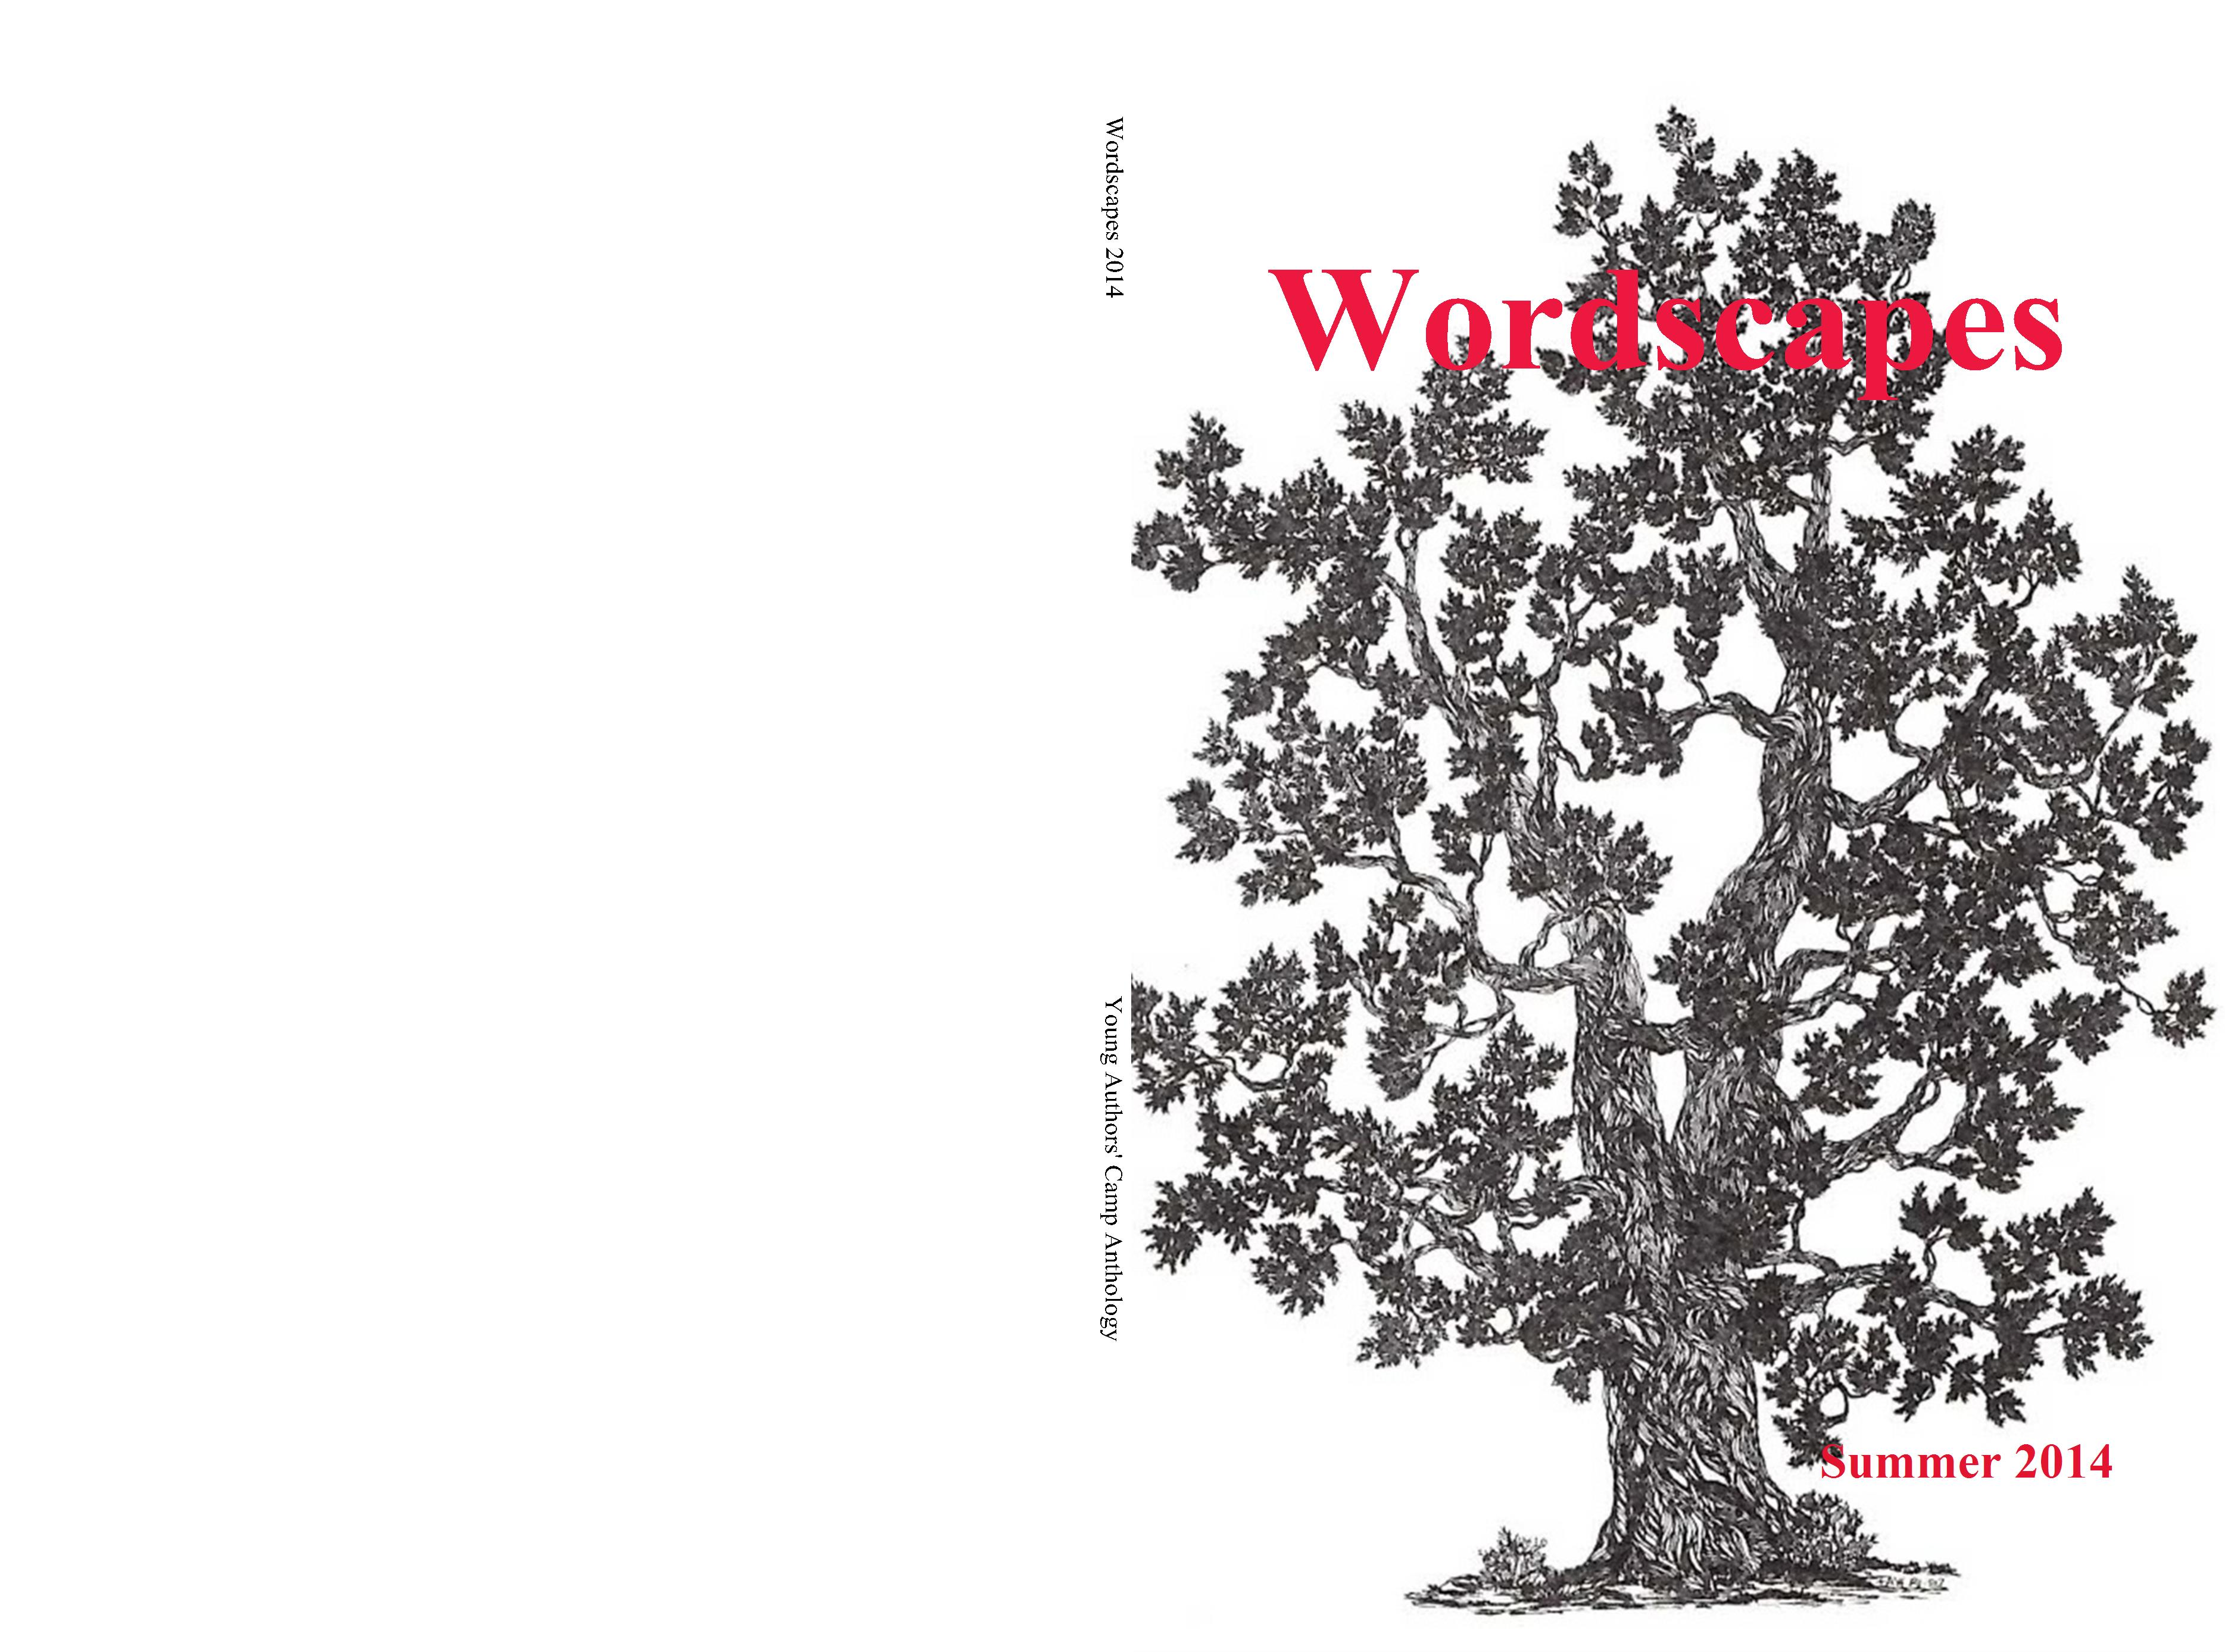 Wordscapes cover image